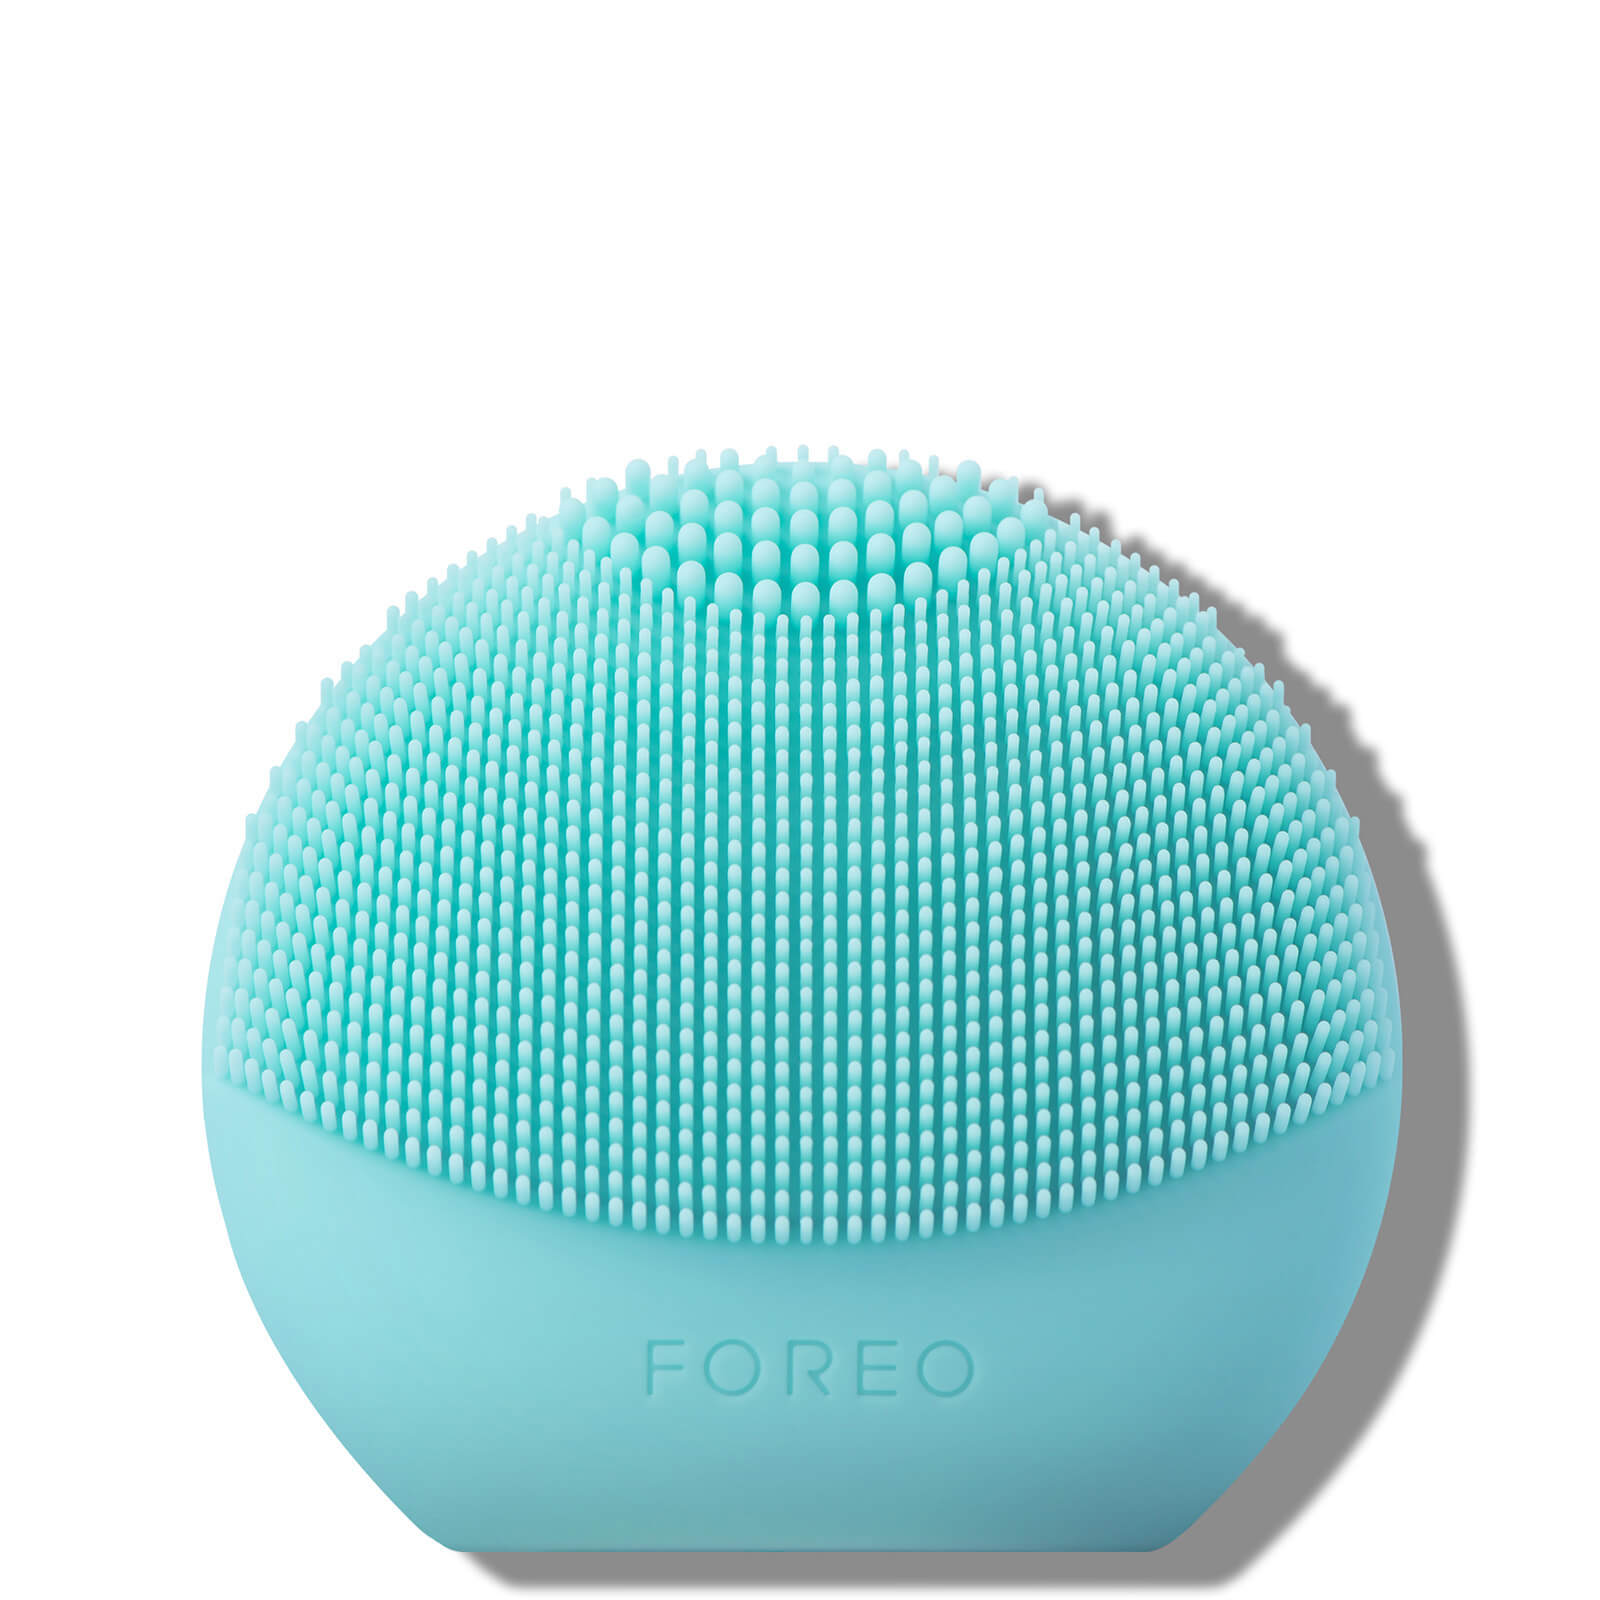 Купить FOREO Luna Play Smart 2 Smart Skin Analysis and Facial Cleansing Device (Various Shades) - Mint For You!